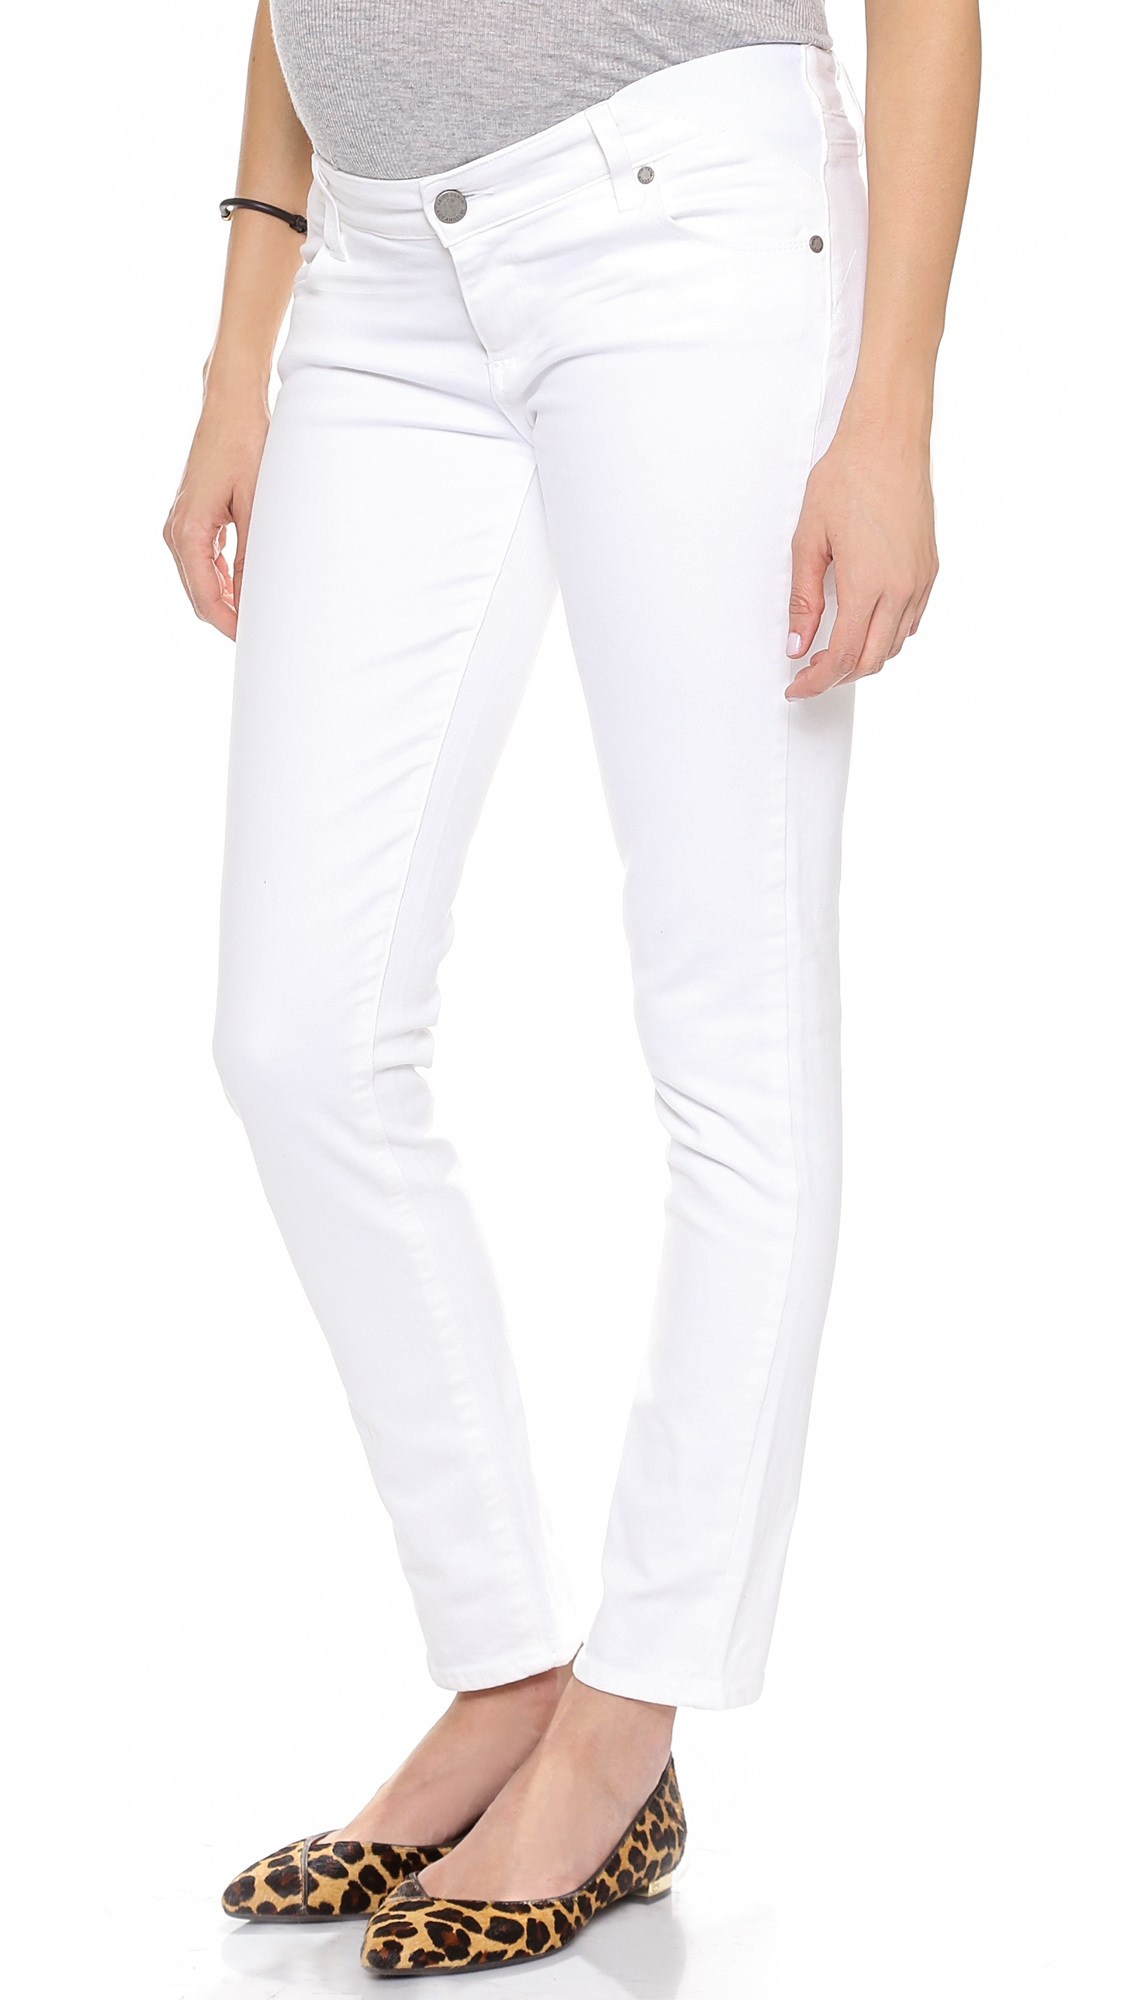 Skyline Ankle Peg Maternity Jeans